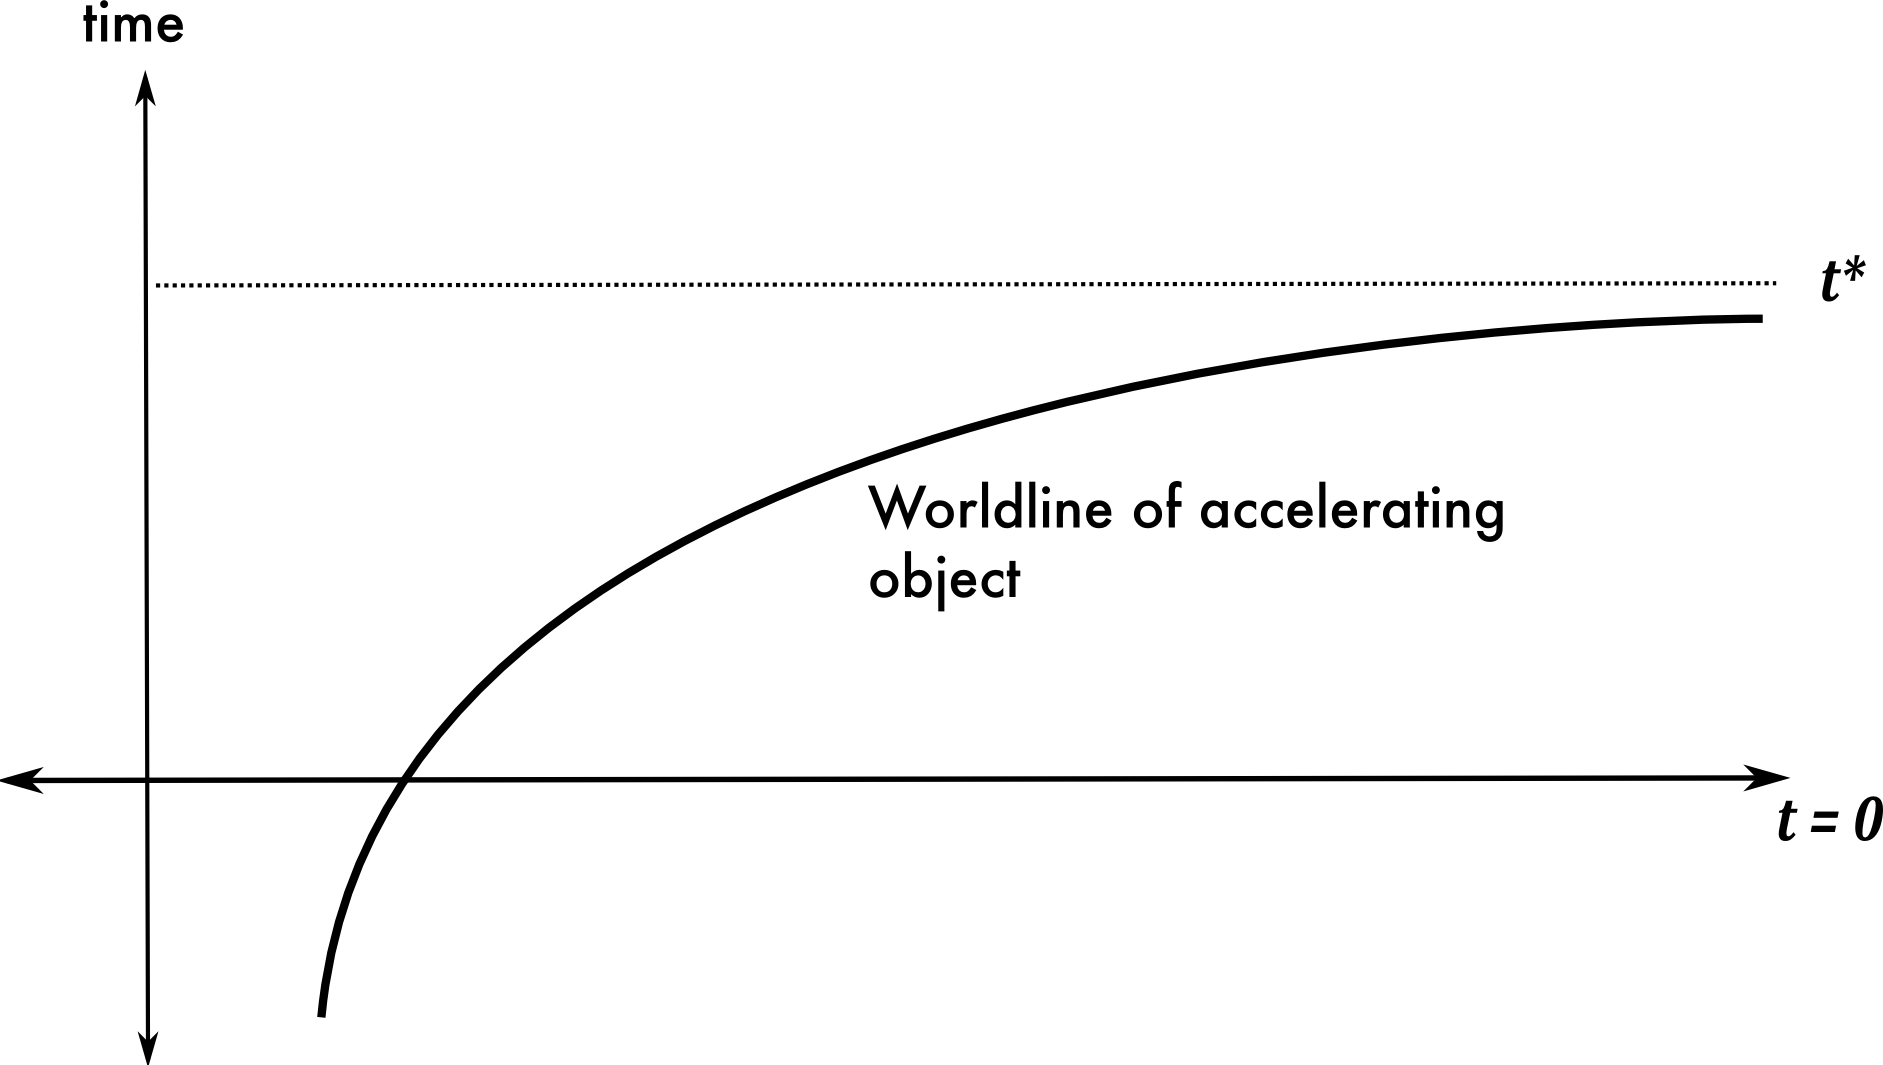 hight resolution of object accelerates to reach infinity